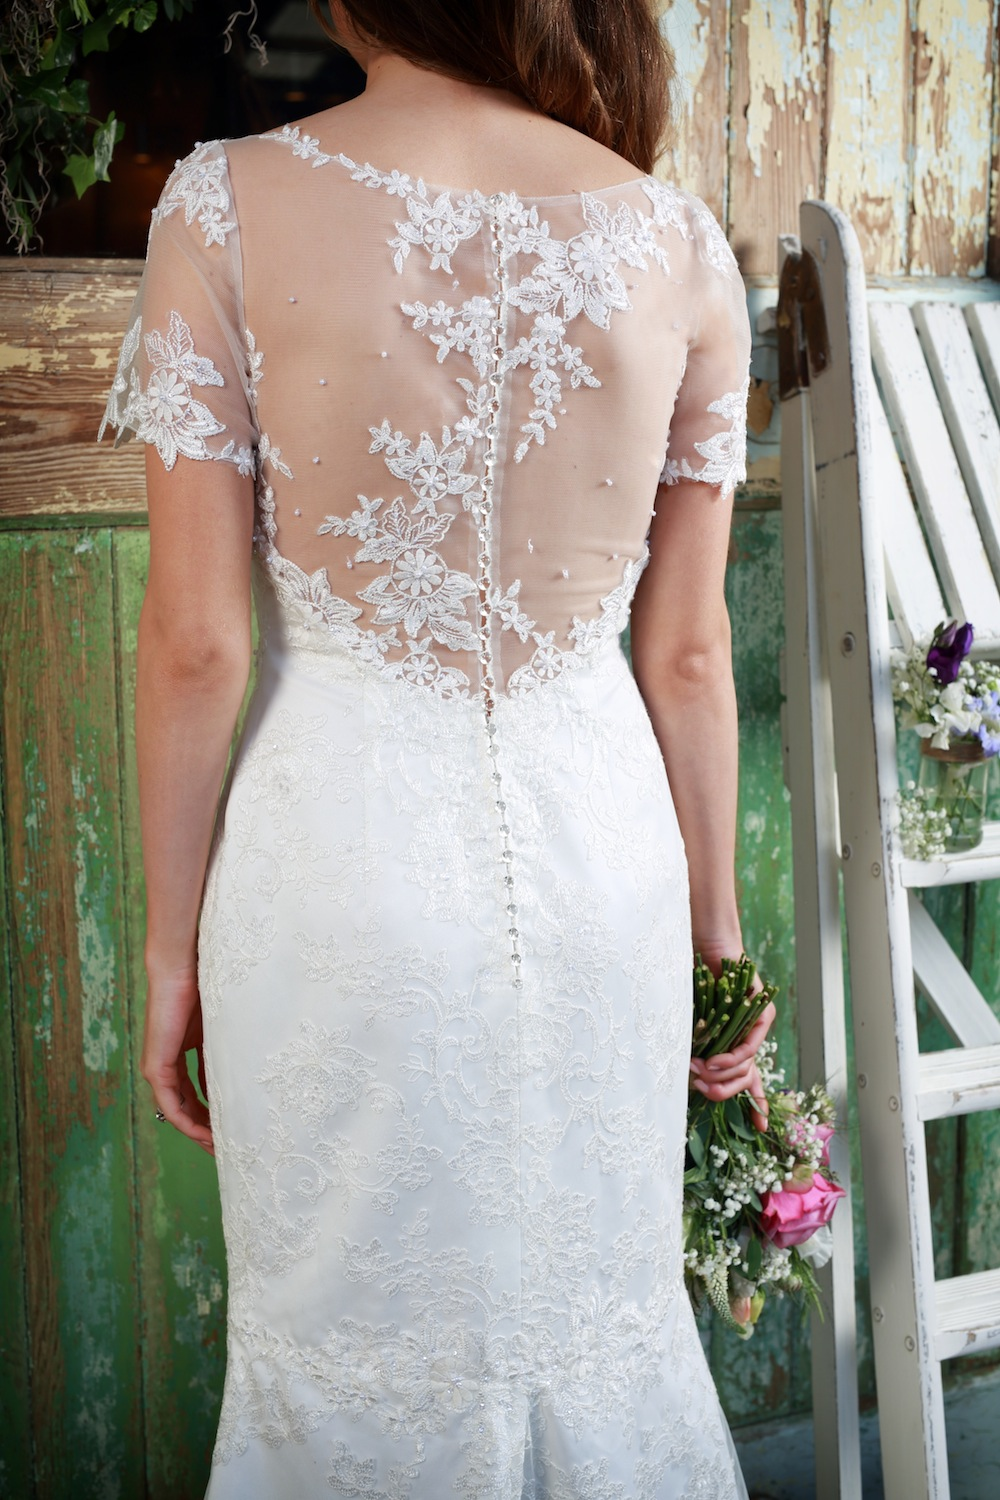 Amanda Wyatt 2016 Wedding Gowns : Honesty - divine mix of lace and clear tulle on sheer skin with a lace fishtail skirt